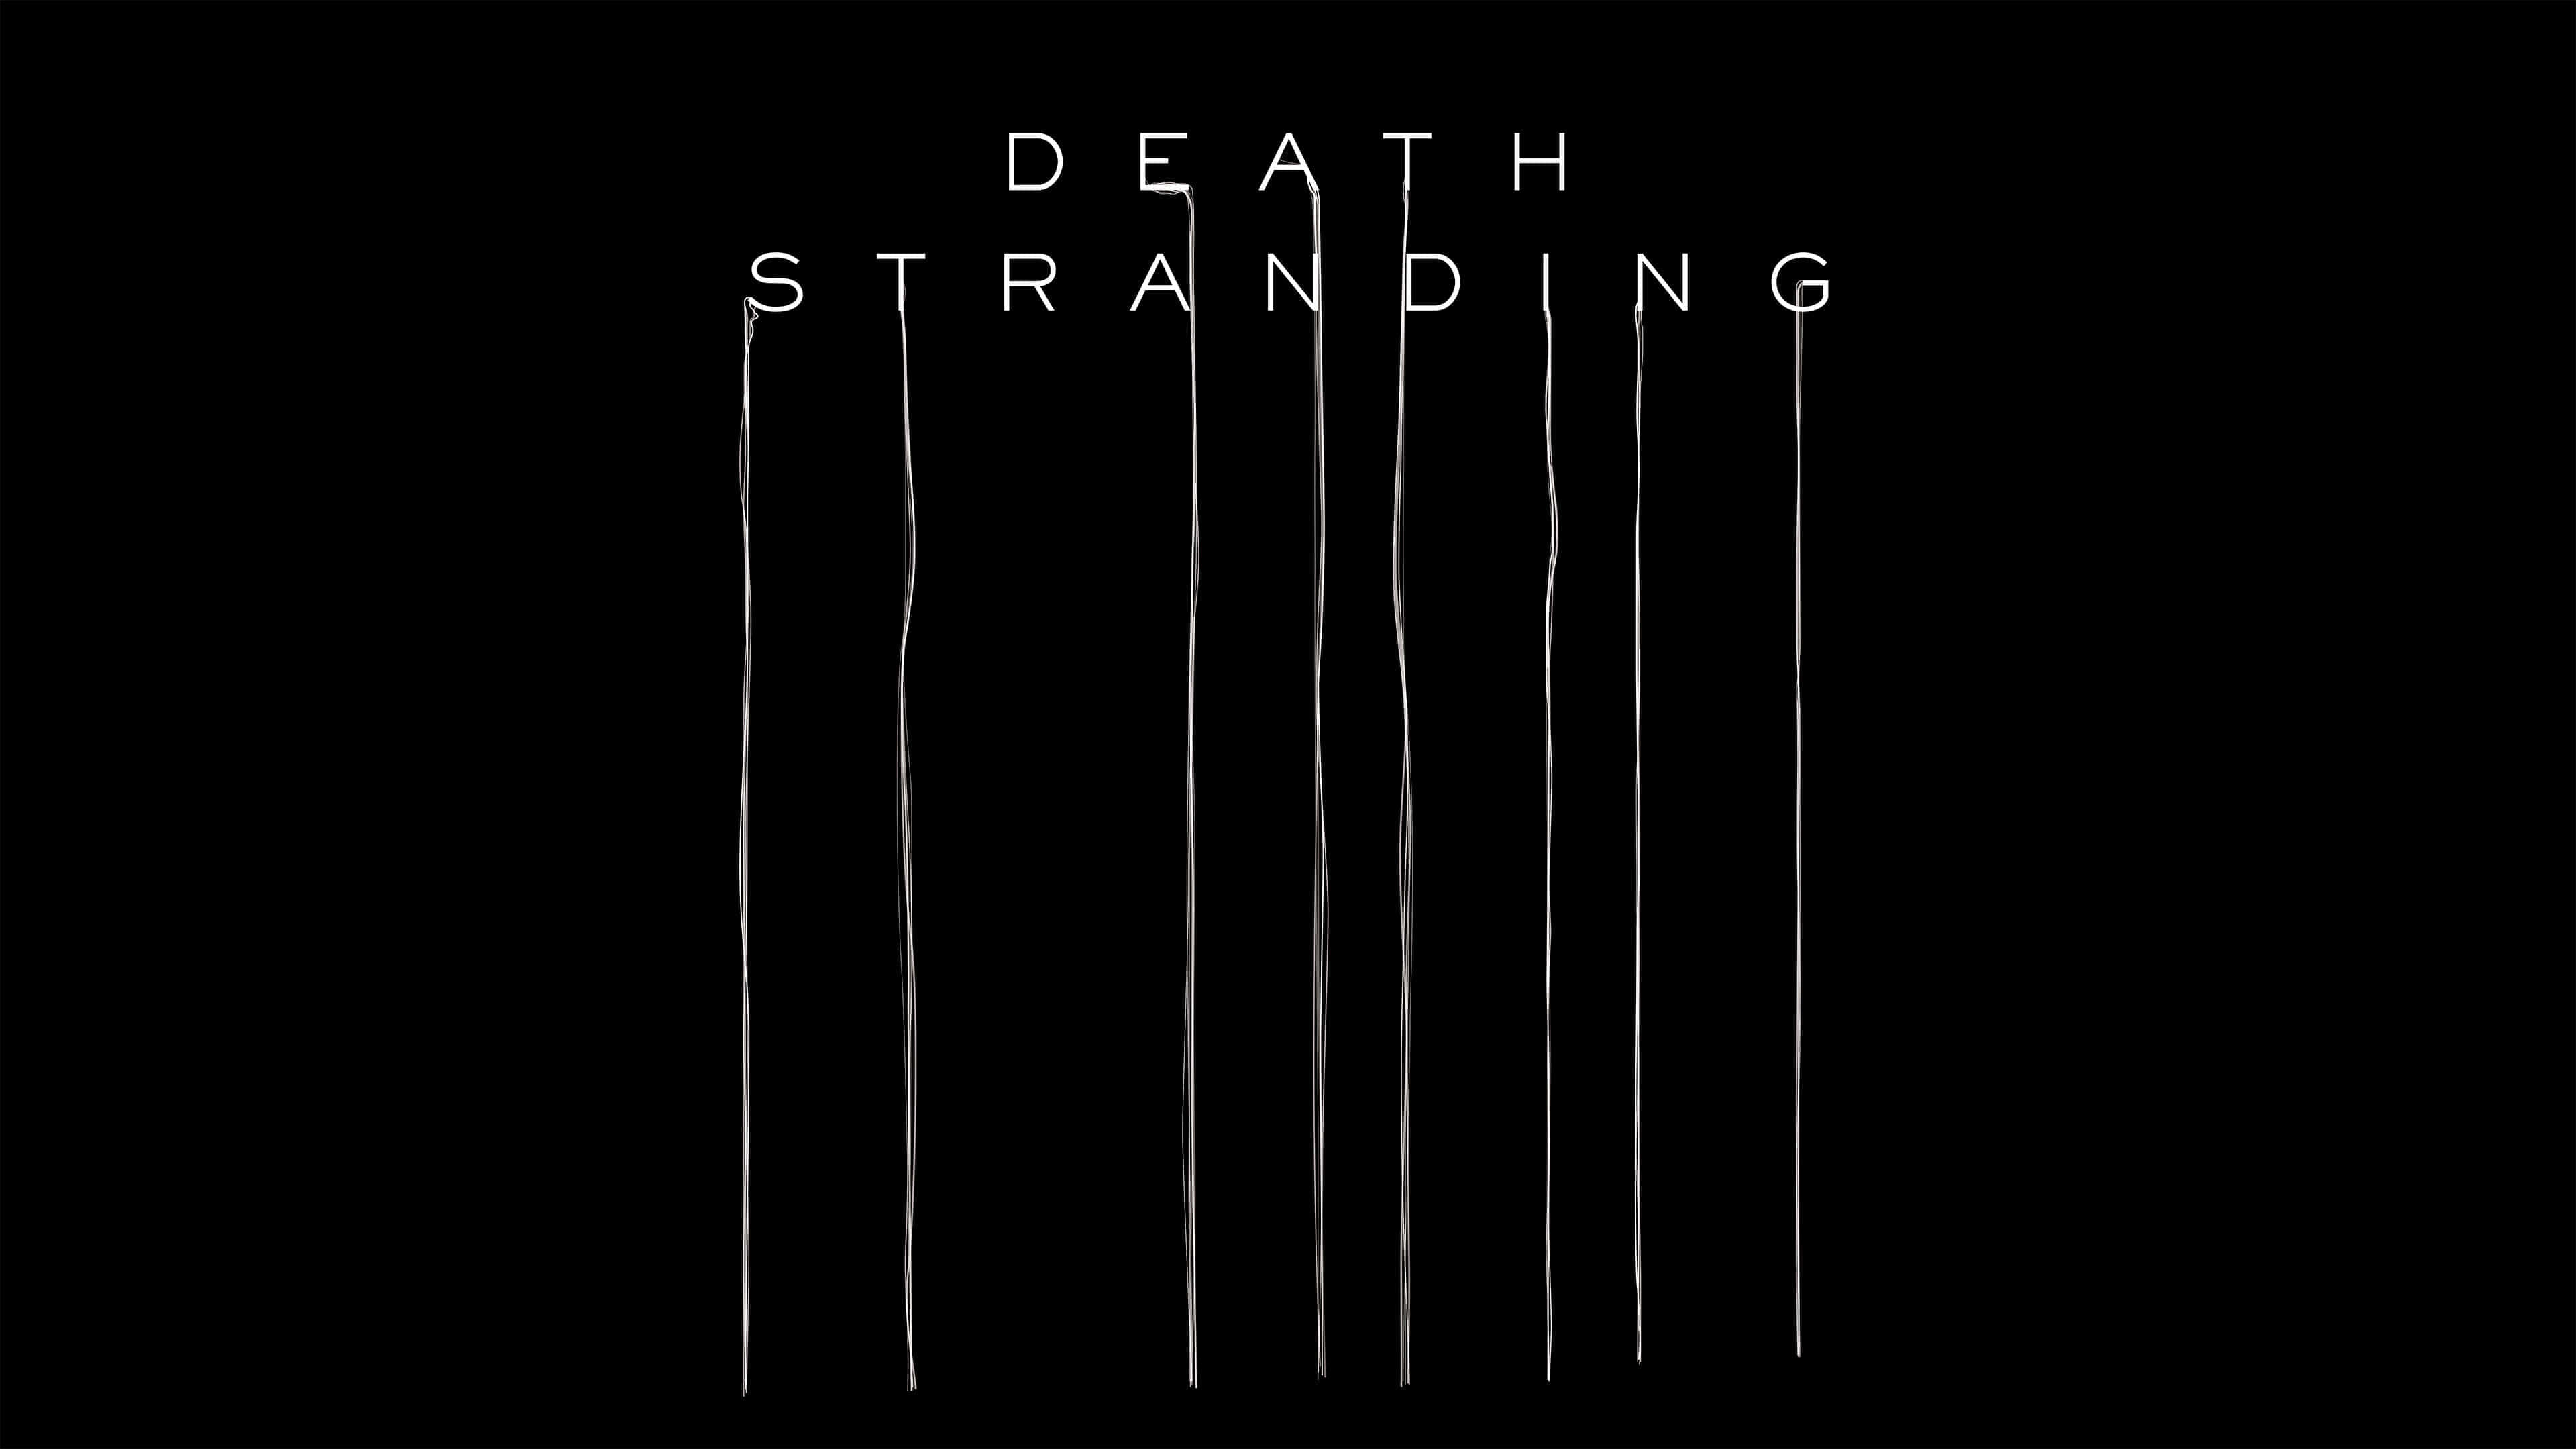 death stranding logo uhd 4k wallpaper